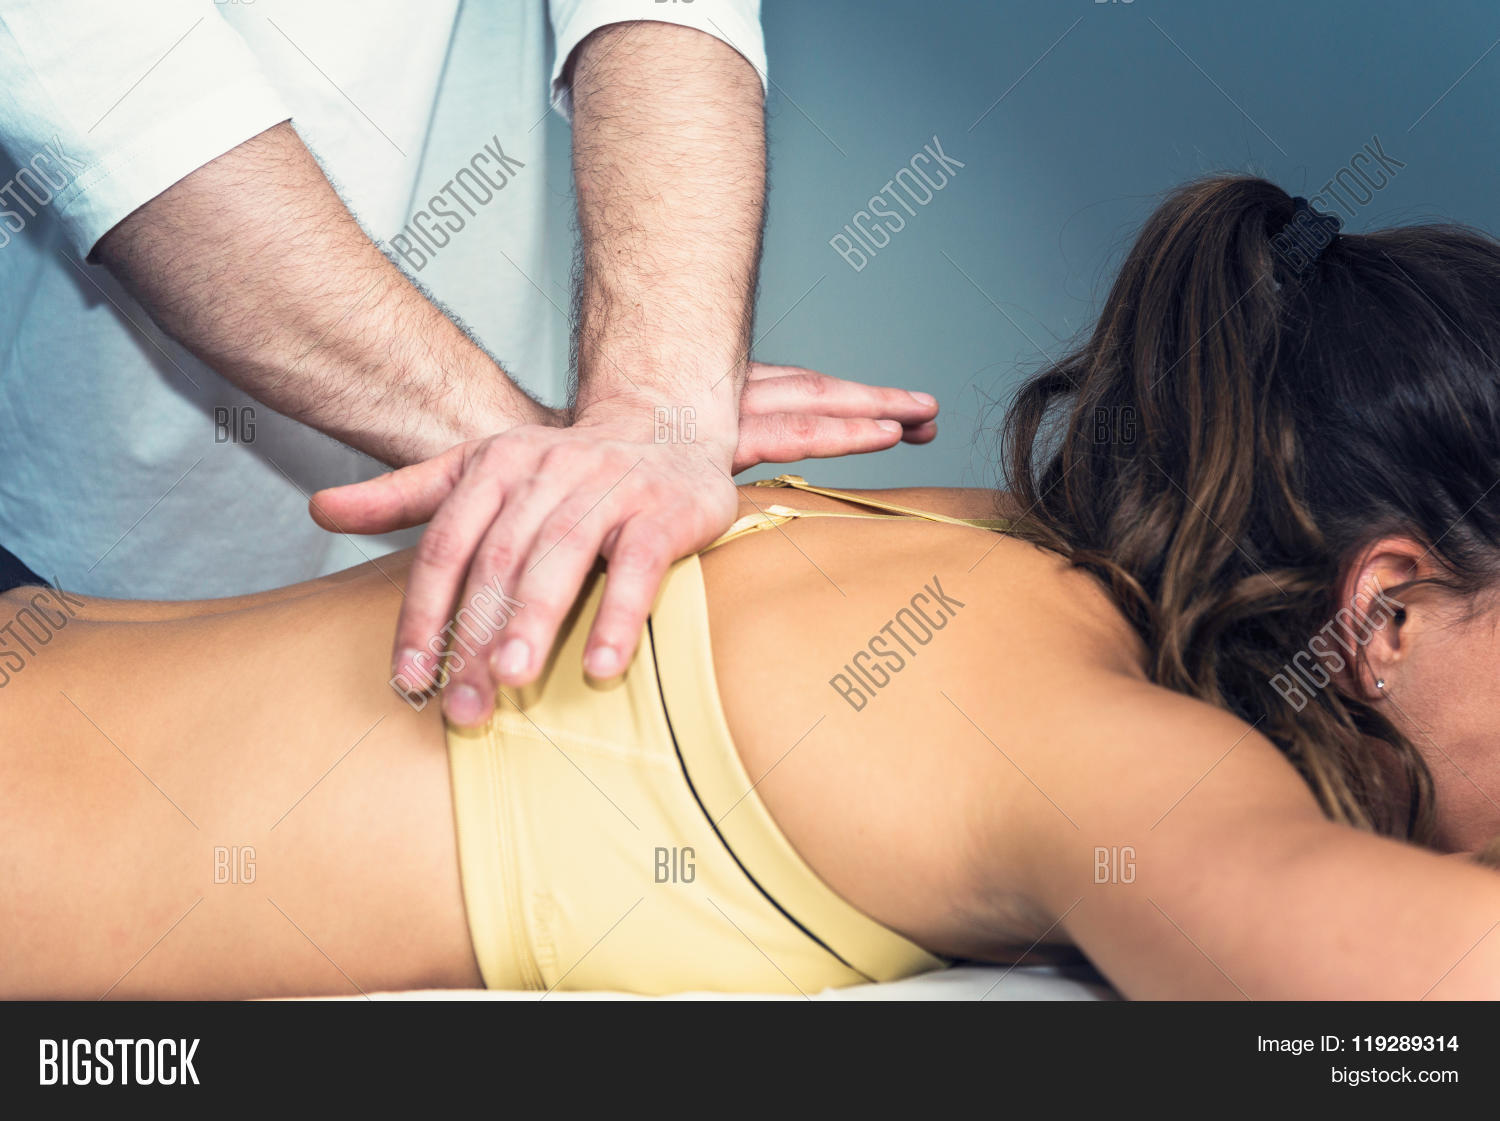 adjustment,alternative,athlete,back,backache,beauty,body,care,chiropractic,chiropractor,doctor,exam,female,hands,health,healthcare,healthcare2014,horizontal,human,indoors,male,man,massage,medical,medicine,muscle,myofascial,occupation,osteopathy,pain,patient,people,physical,pressure,procedure,professional,recovery,skill,spine,therapist,therapy,touching,treating,two,women,young